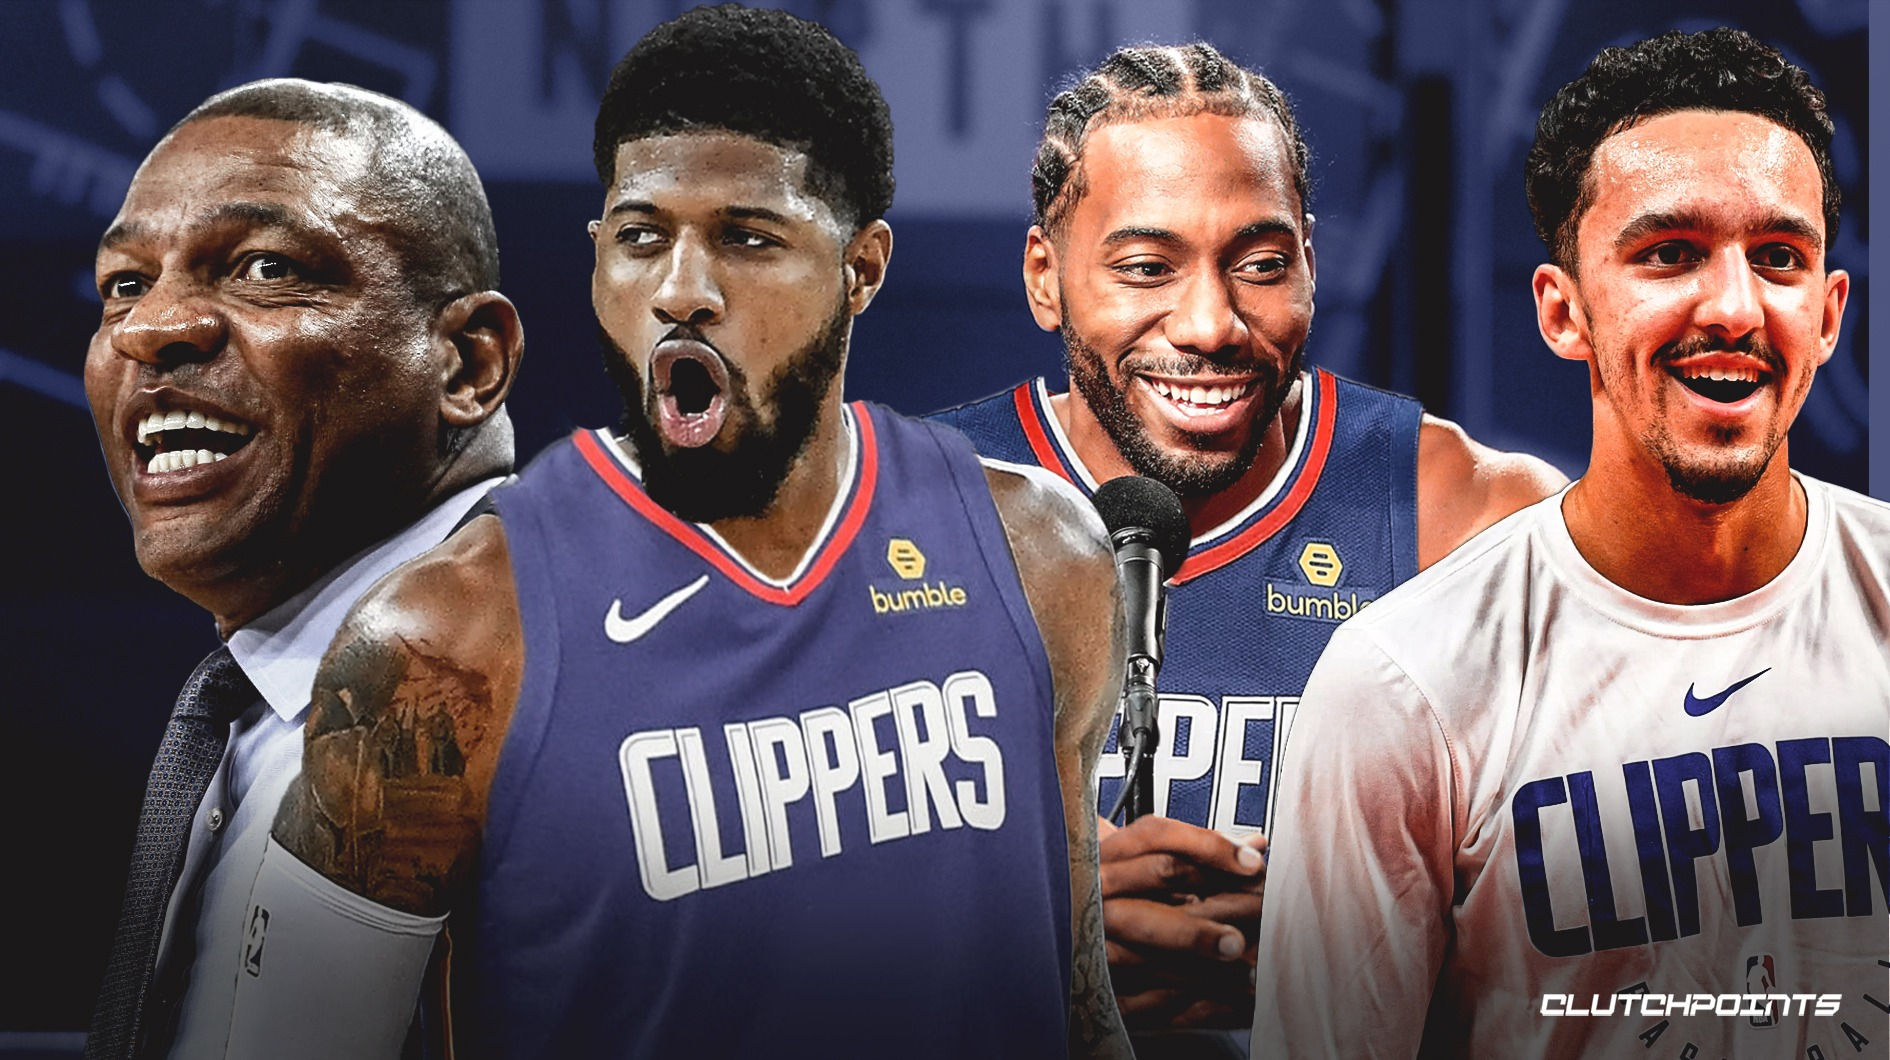 Clippers-5.jpg